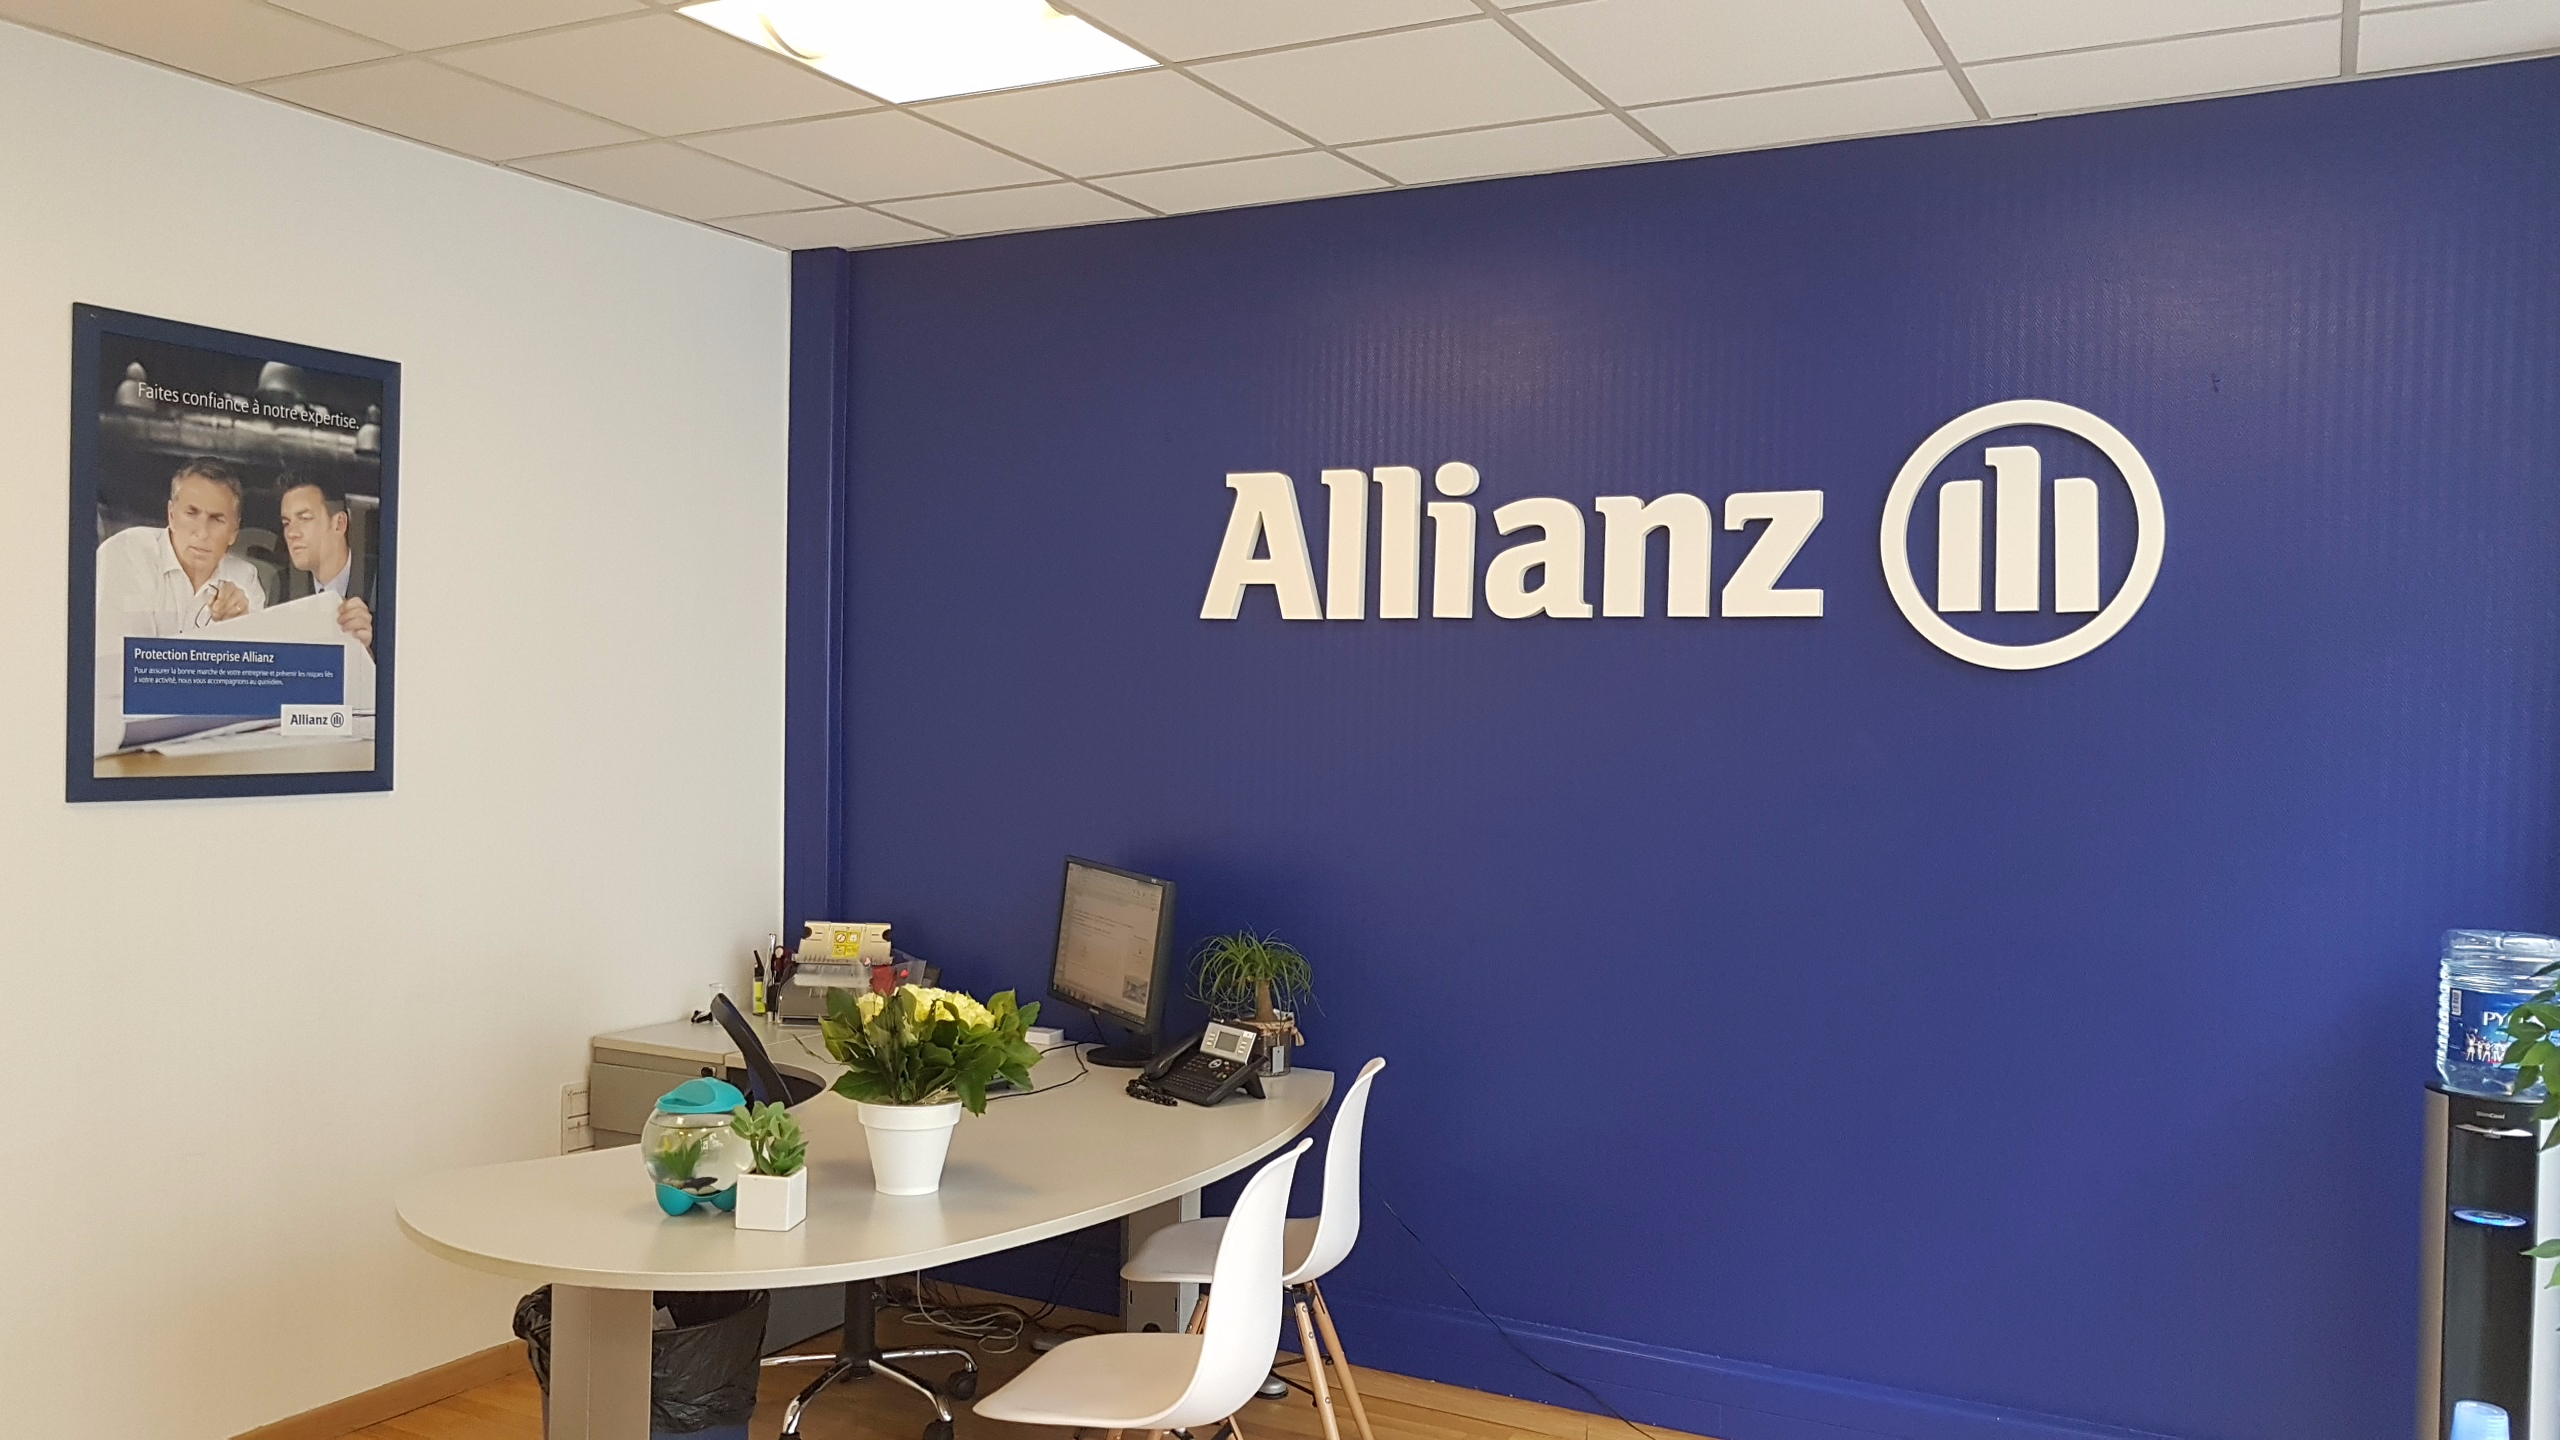 Allianz Maisons alfort - Jean-luc CHIMIER